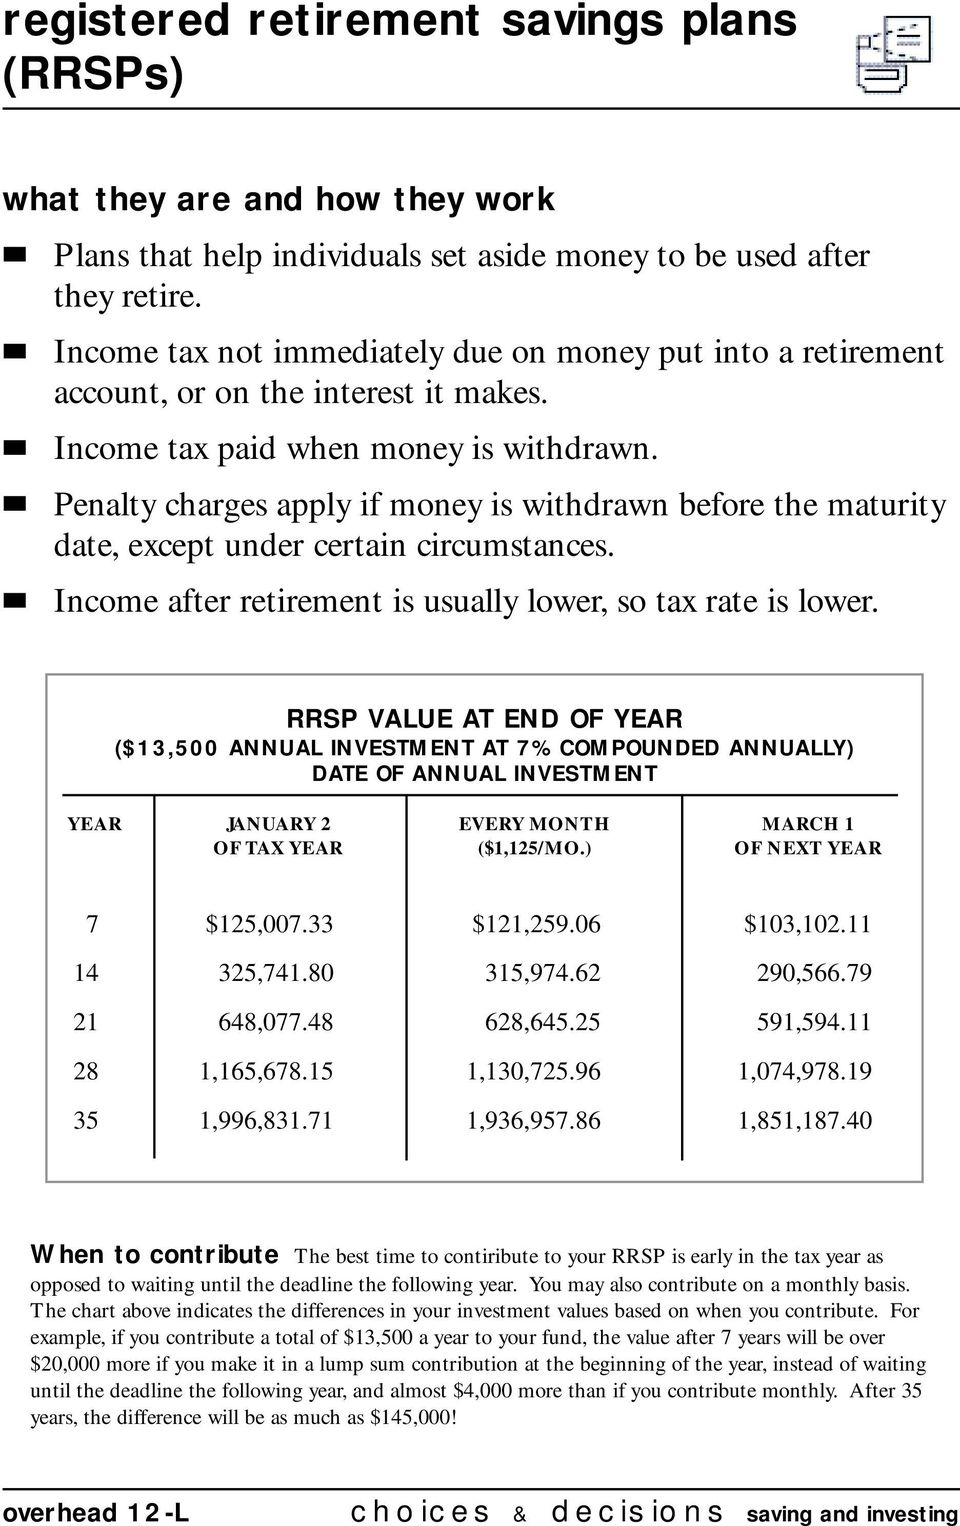 Penalty charges apply if money is withdrawn before the maturity date, except under certain circumstances. Income after retirement is usually lower, so tax rate is lower.